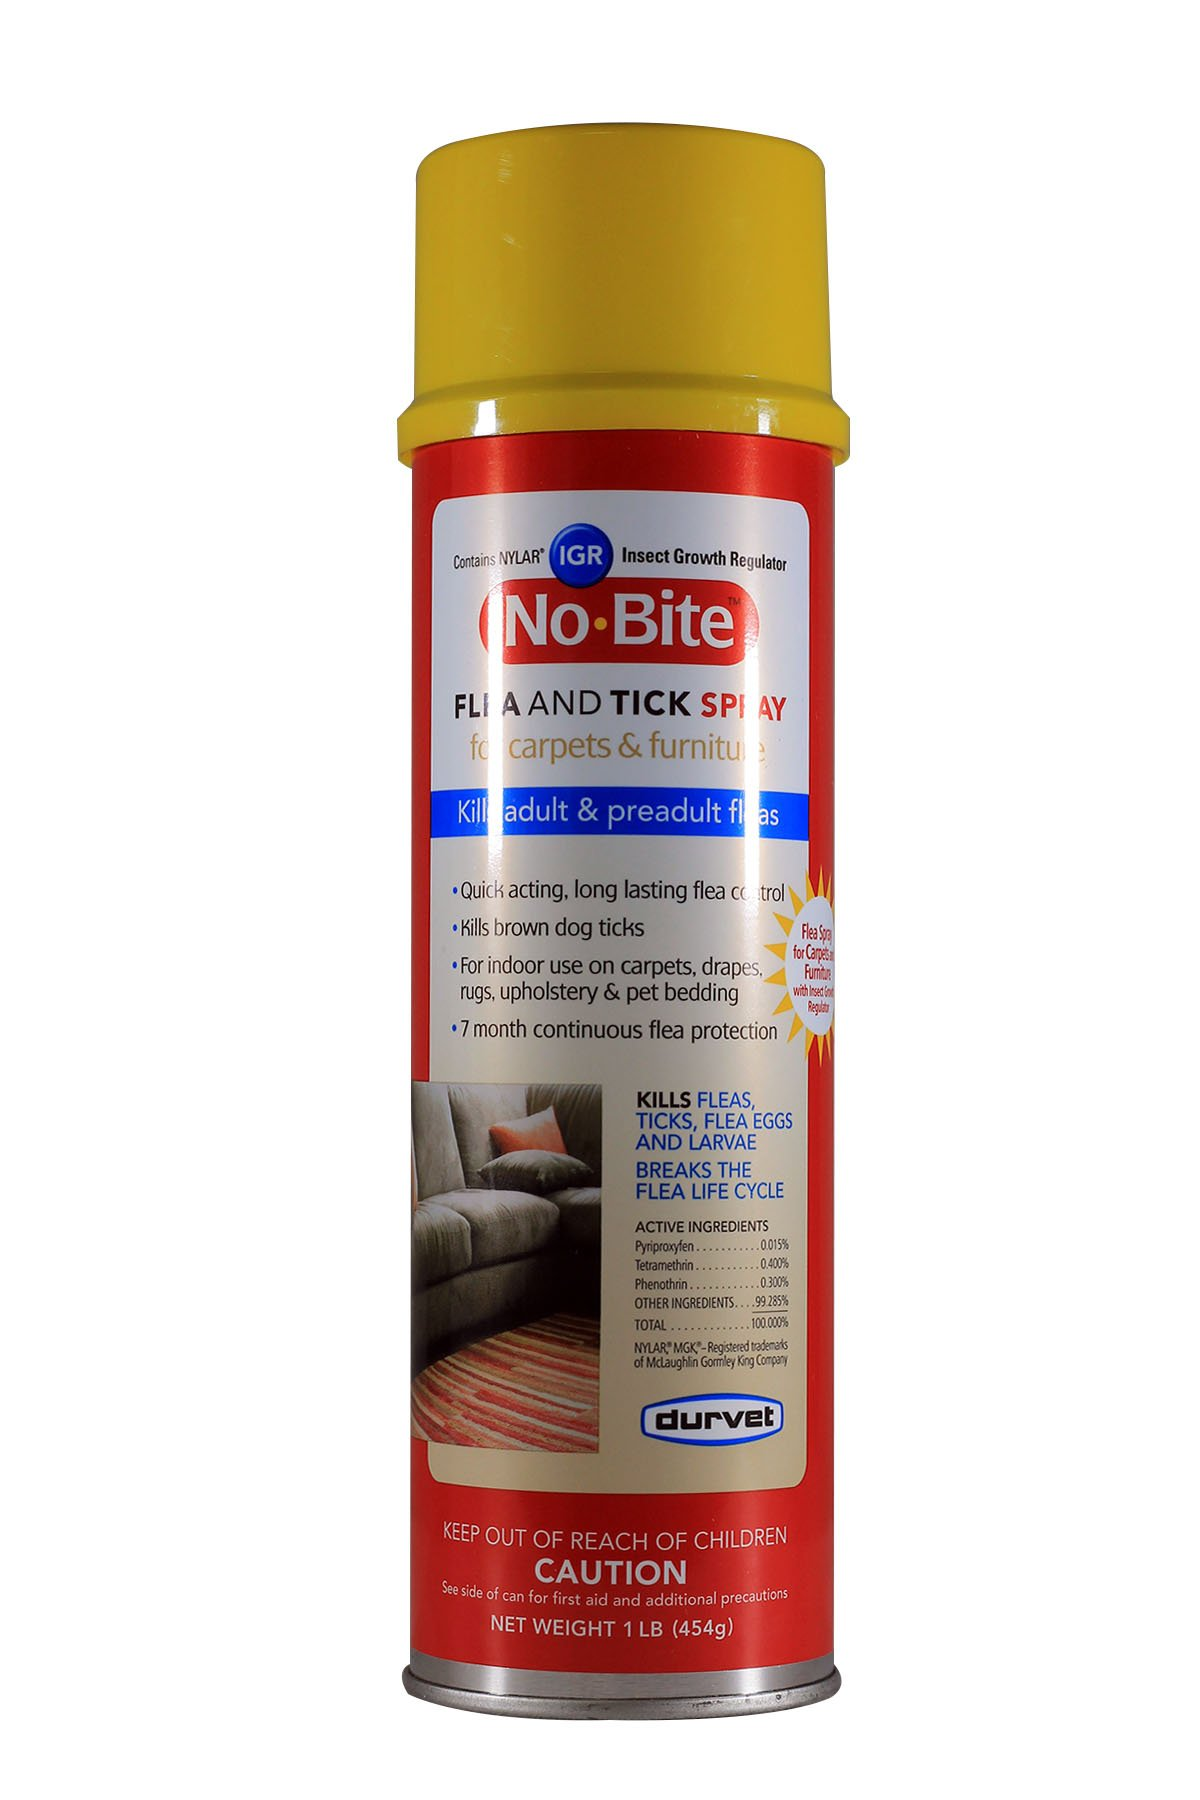 Durvet 011-1134 No Bite IGR Flea & Tick House & Carpet Spray, 16 oz